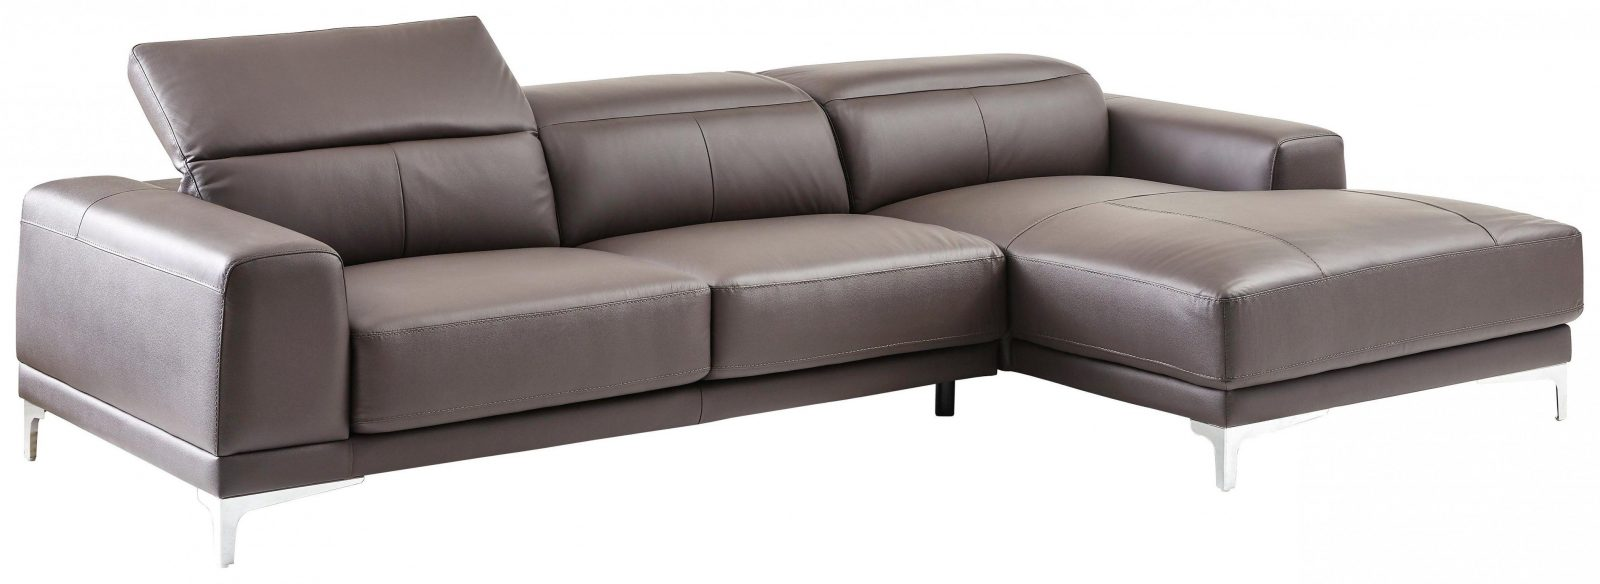 Sofa 3 Meter Breit Max Chesterfield 3 Sofa Couch 3 Meter